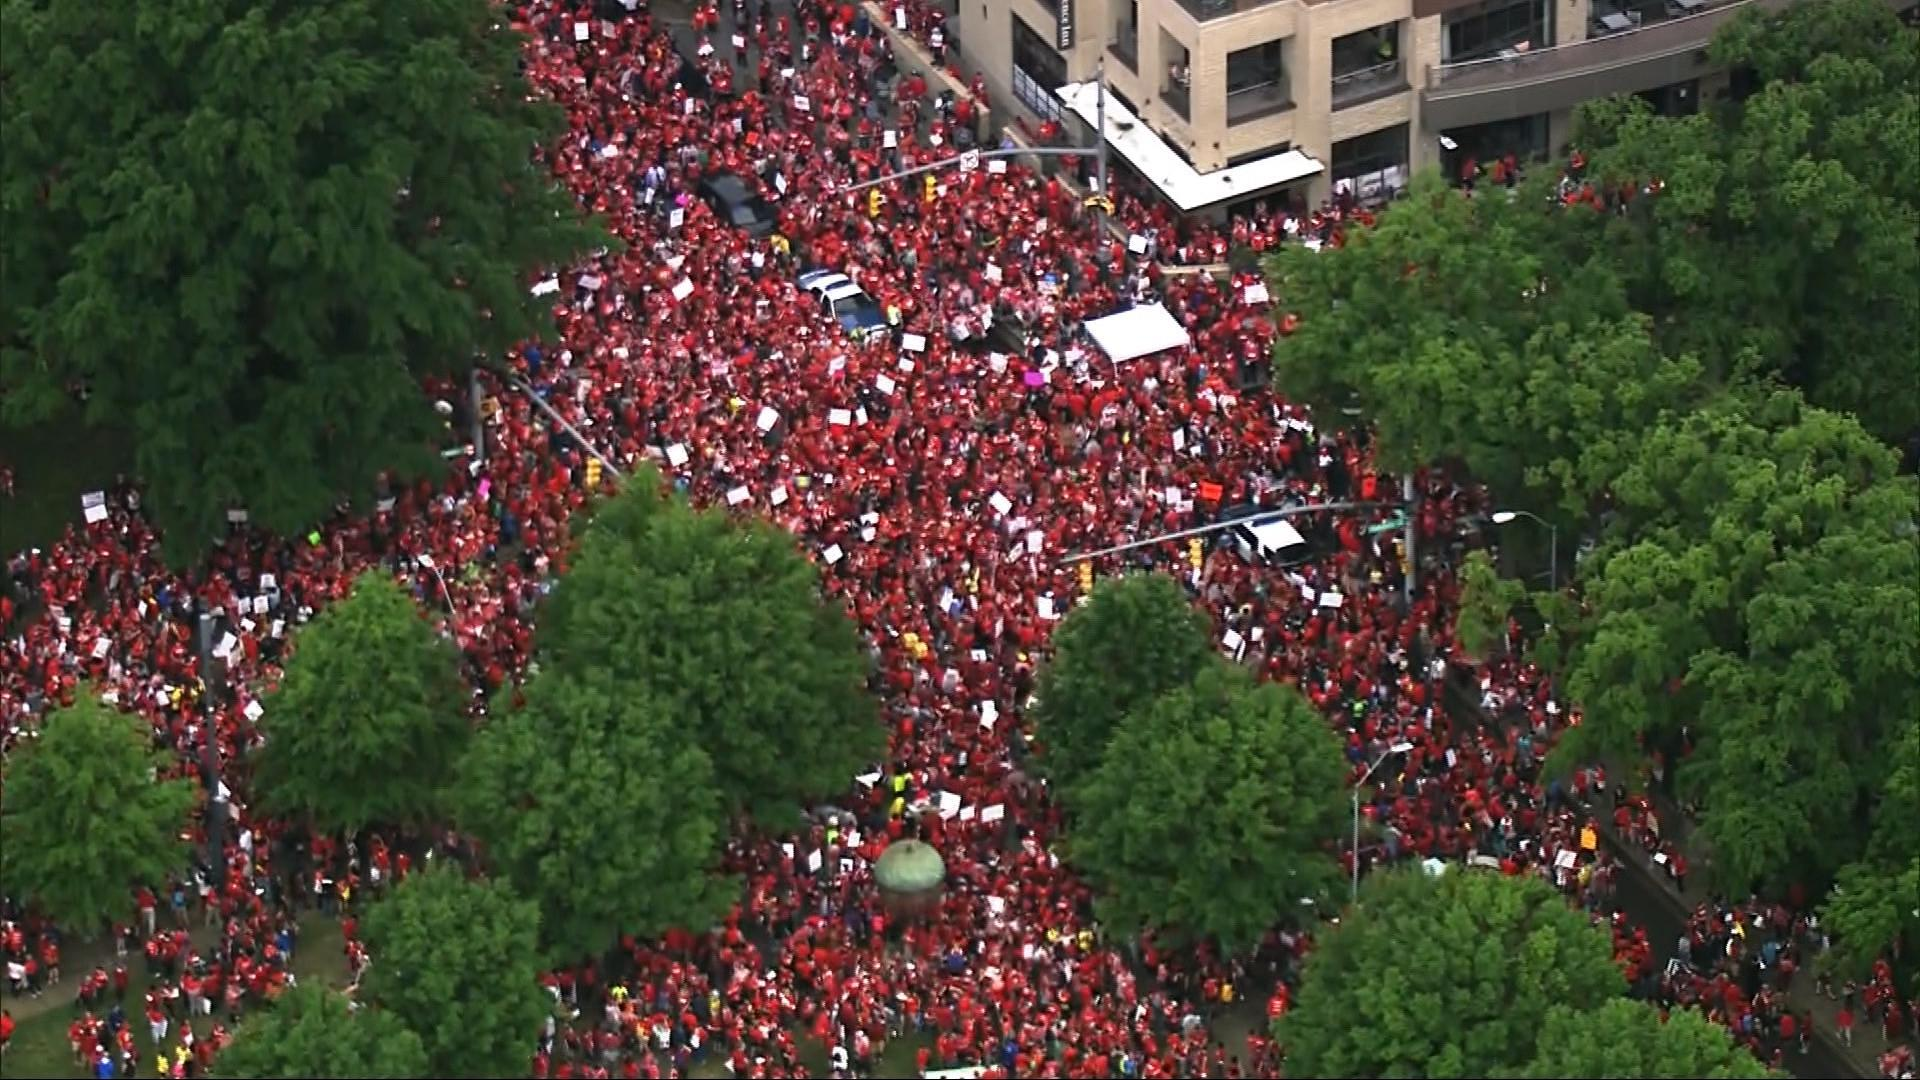 North Carolina teacher strikes, national teacher strikes, teacher pay, teacher walkouts, right to work laws, union busting, teachers union